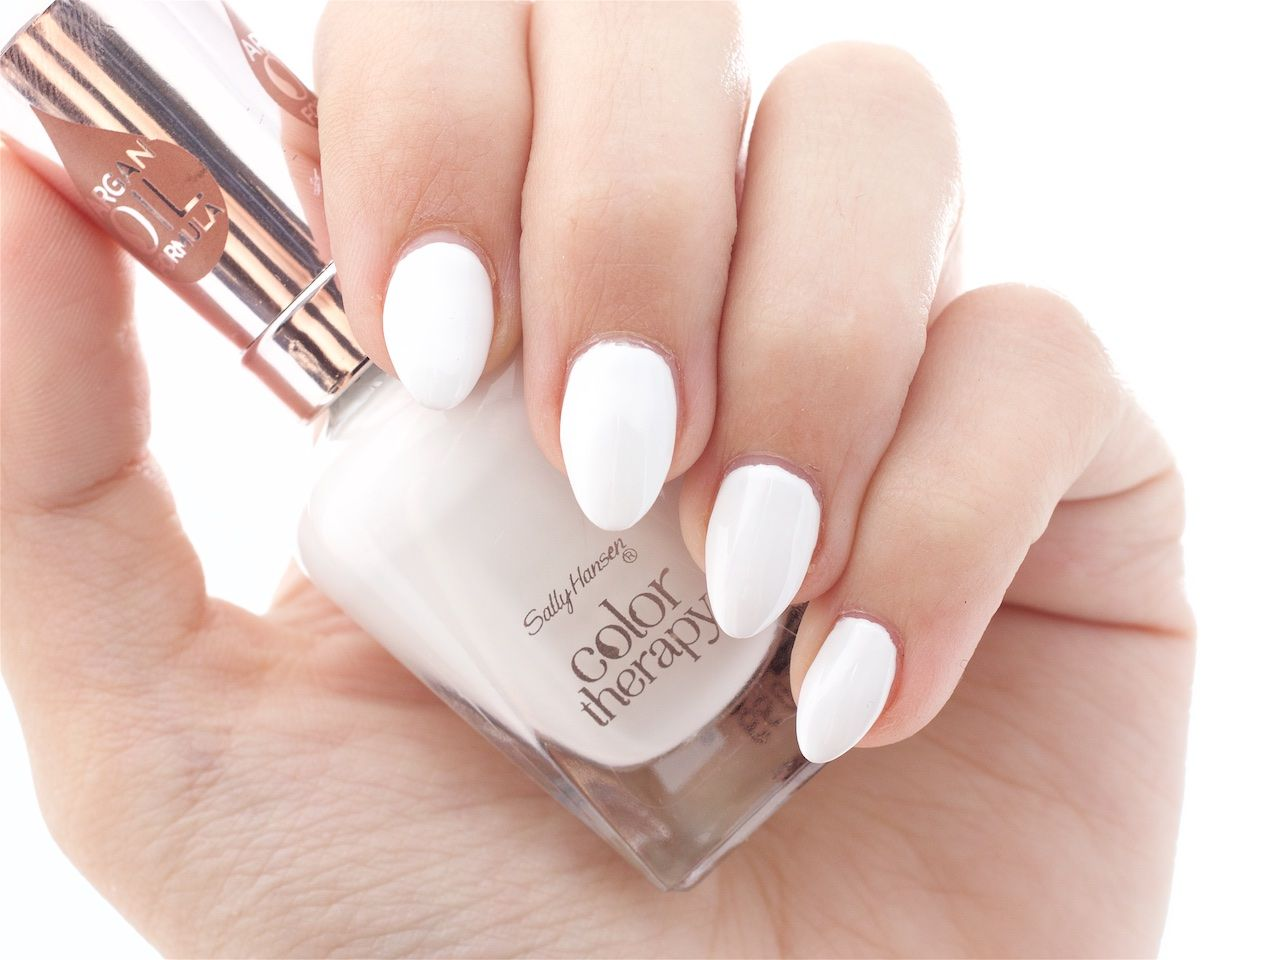 Colour therapy for beauty - Sally Hansen Color Therapy In Well Well Well